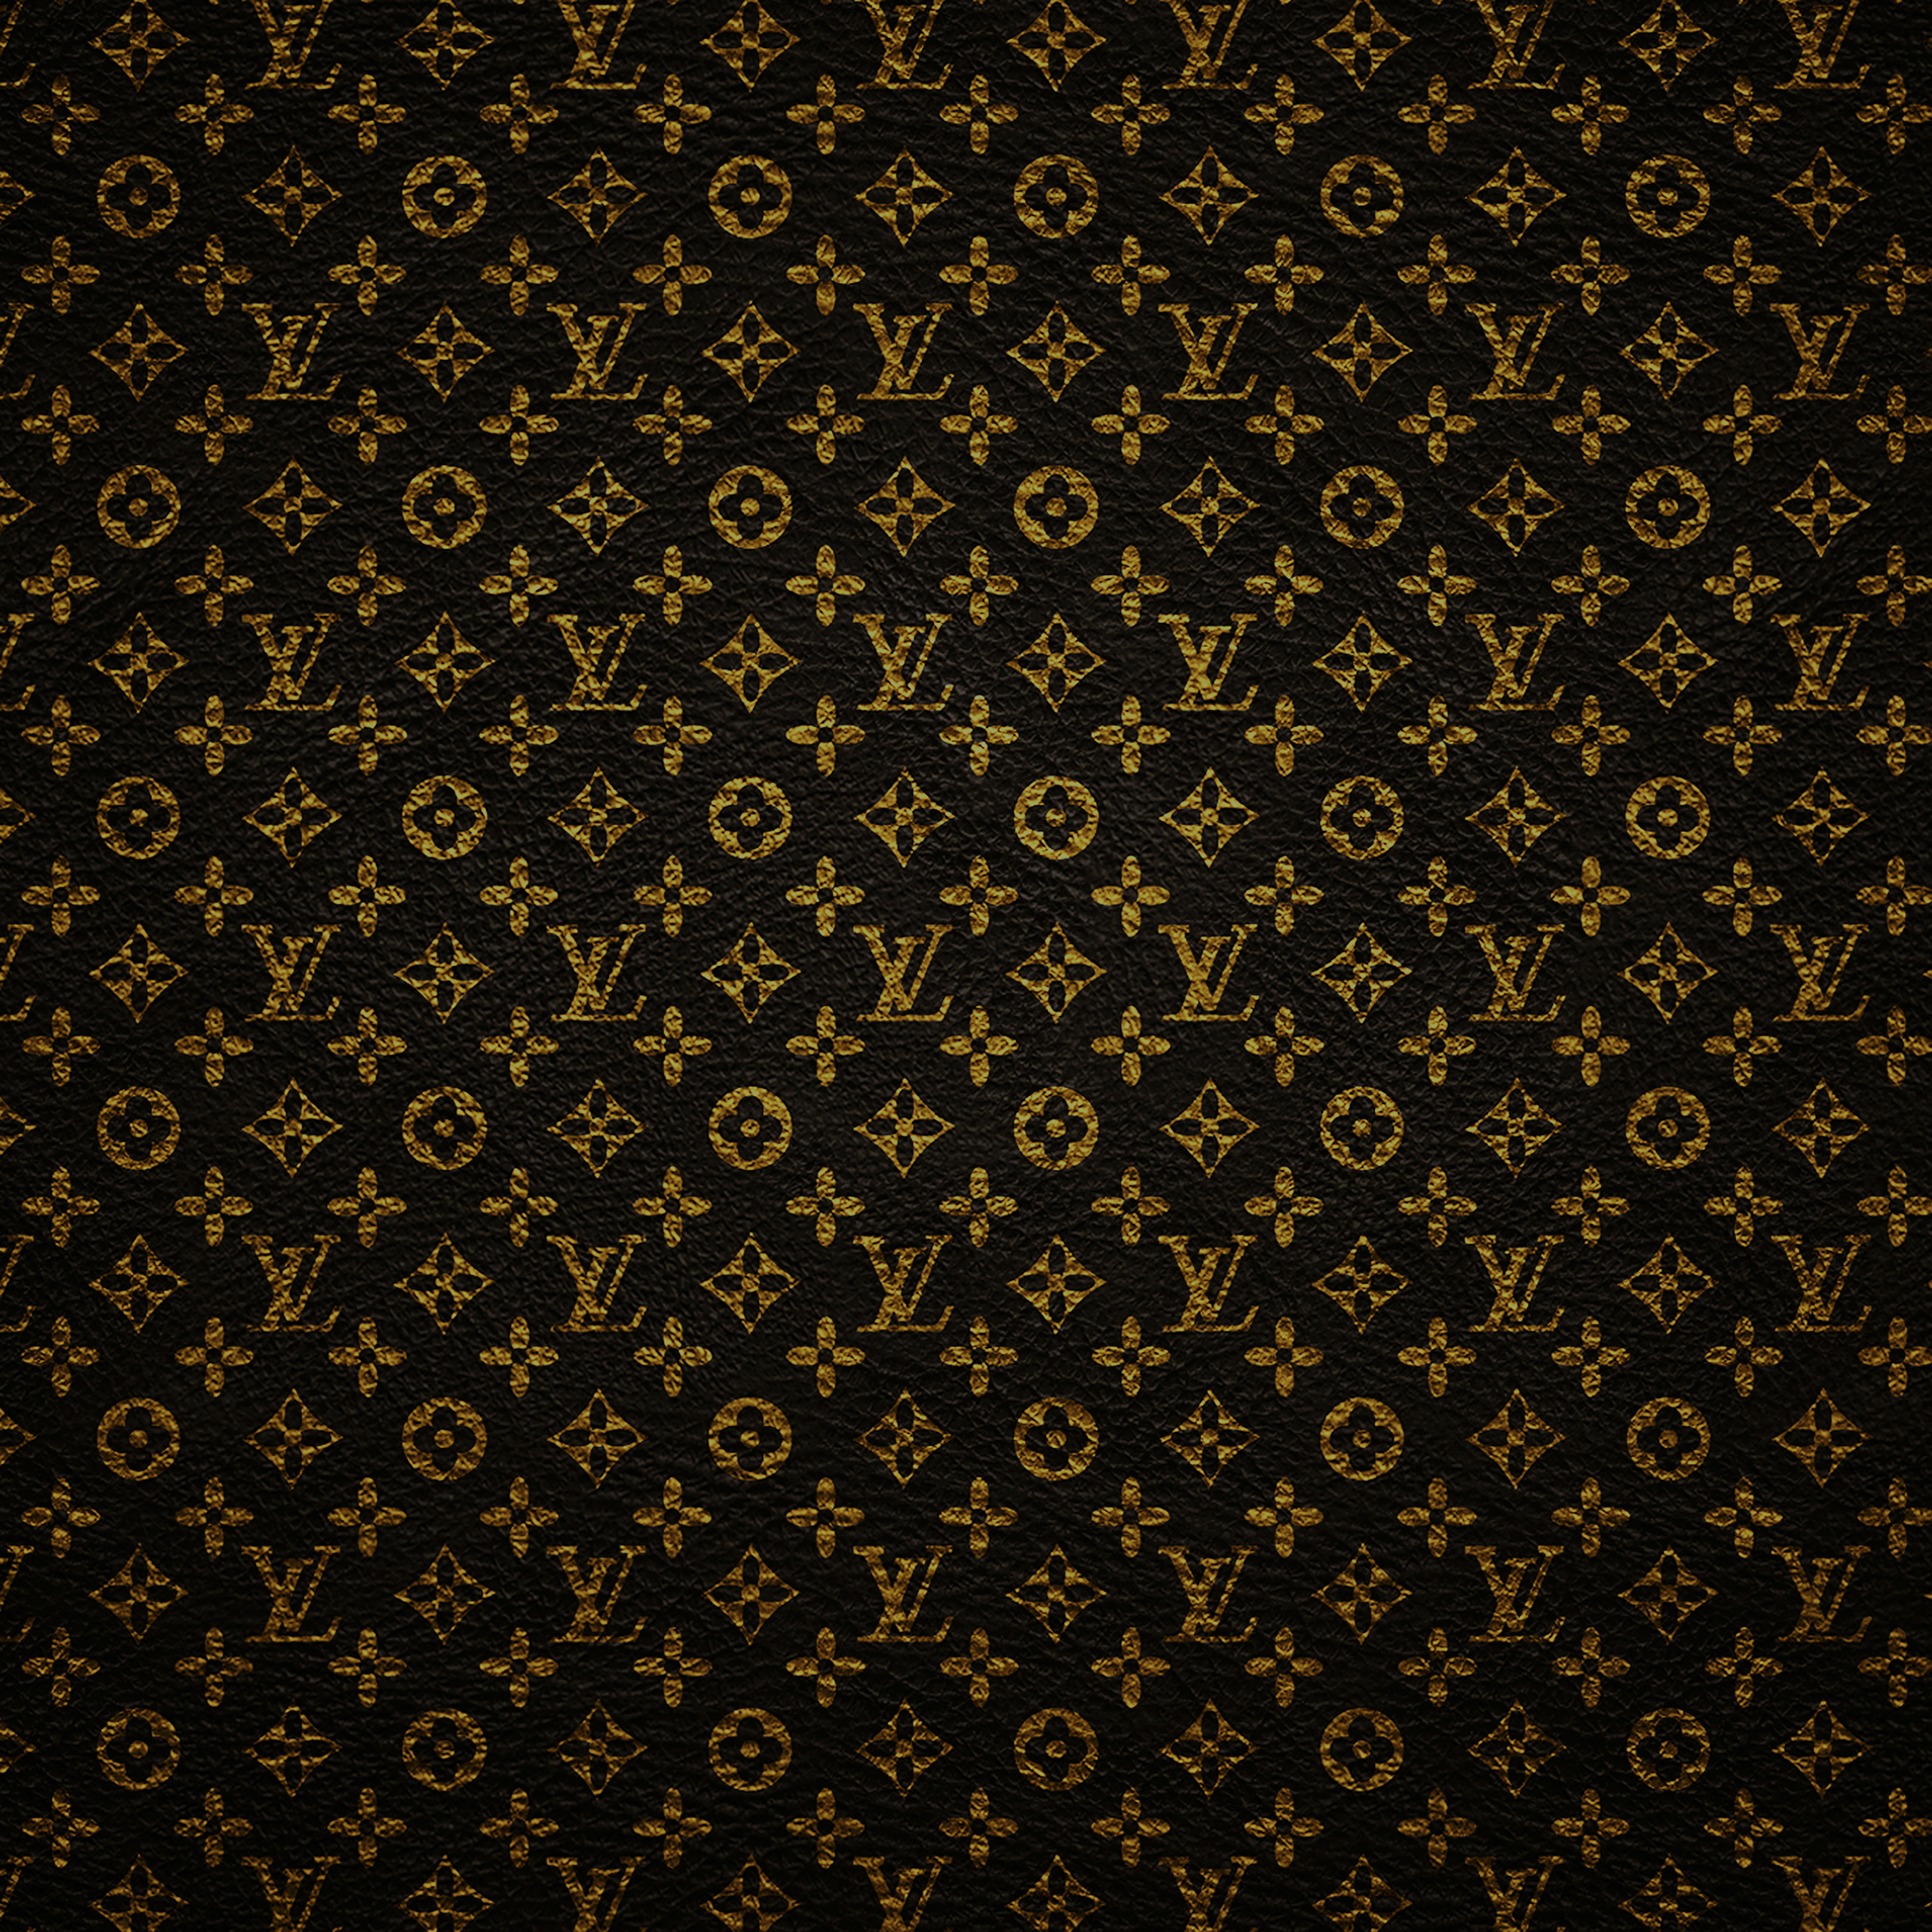 Wonderful Wallpaper Macbook Louis Vuitton - papers  You Should Have_174863.jpg